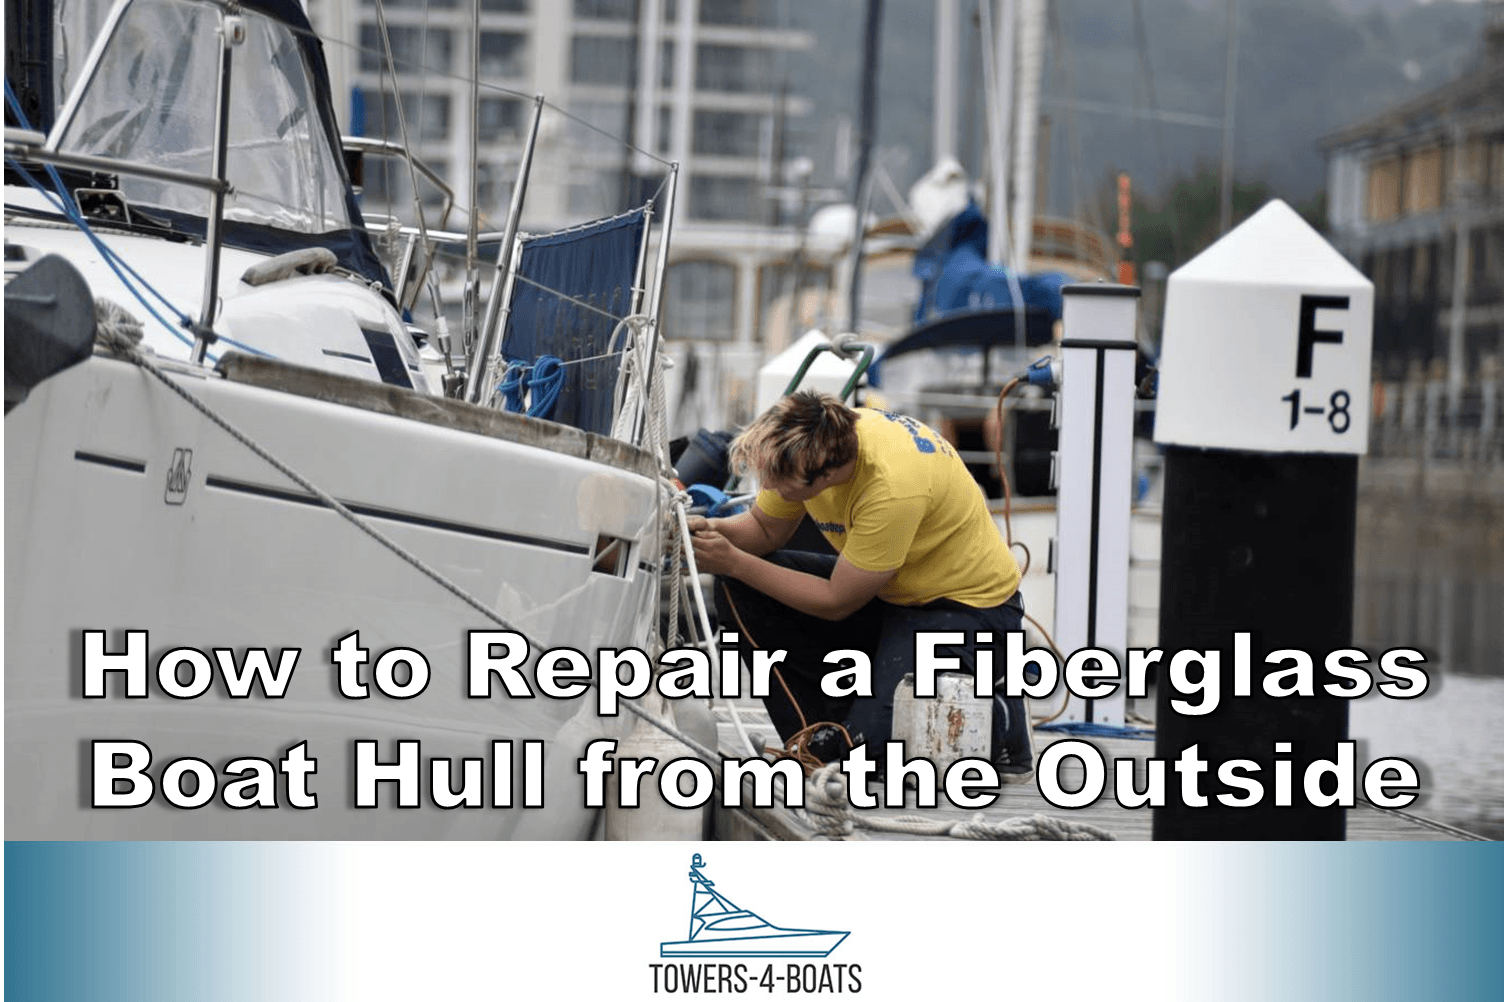 How To Repair A Fiberglass Boat Hull From The Outside